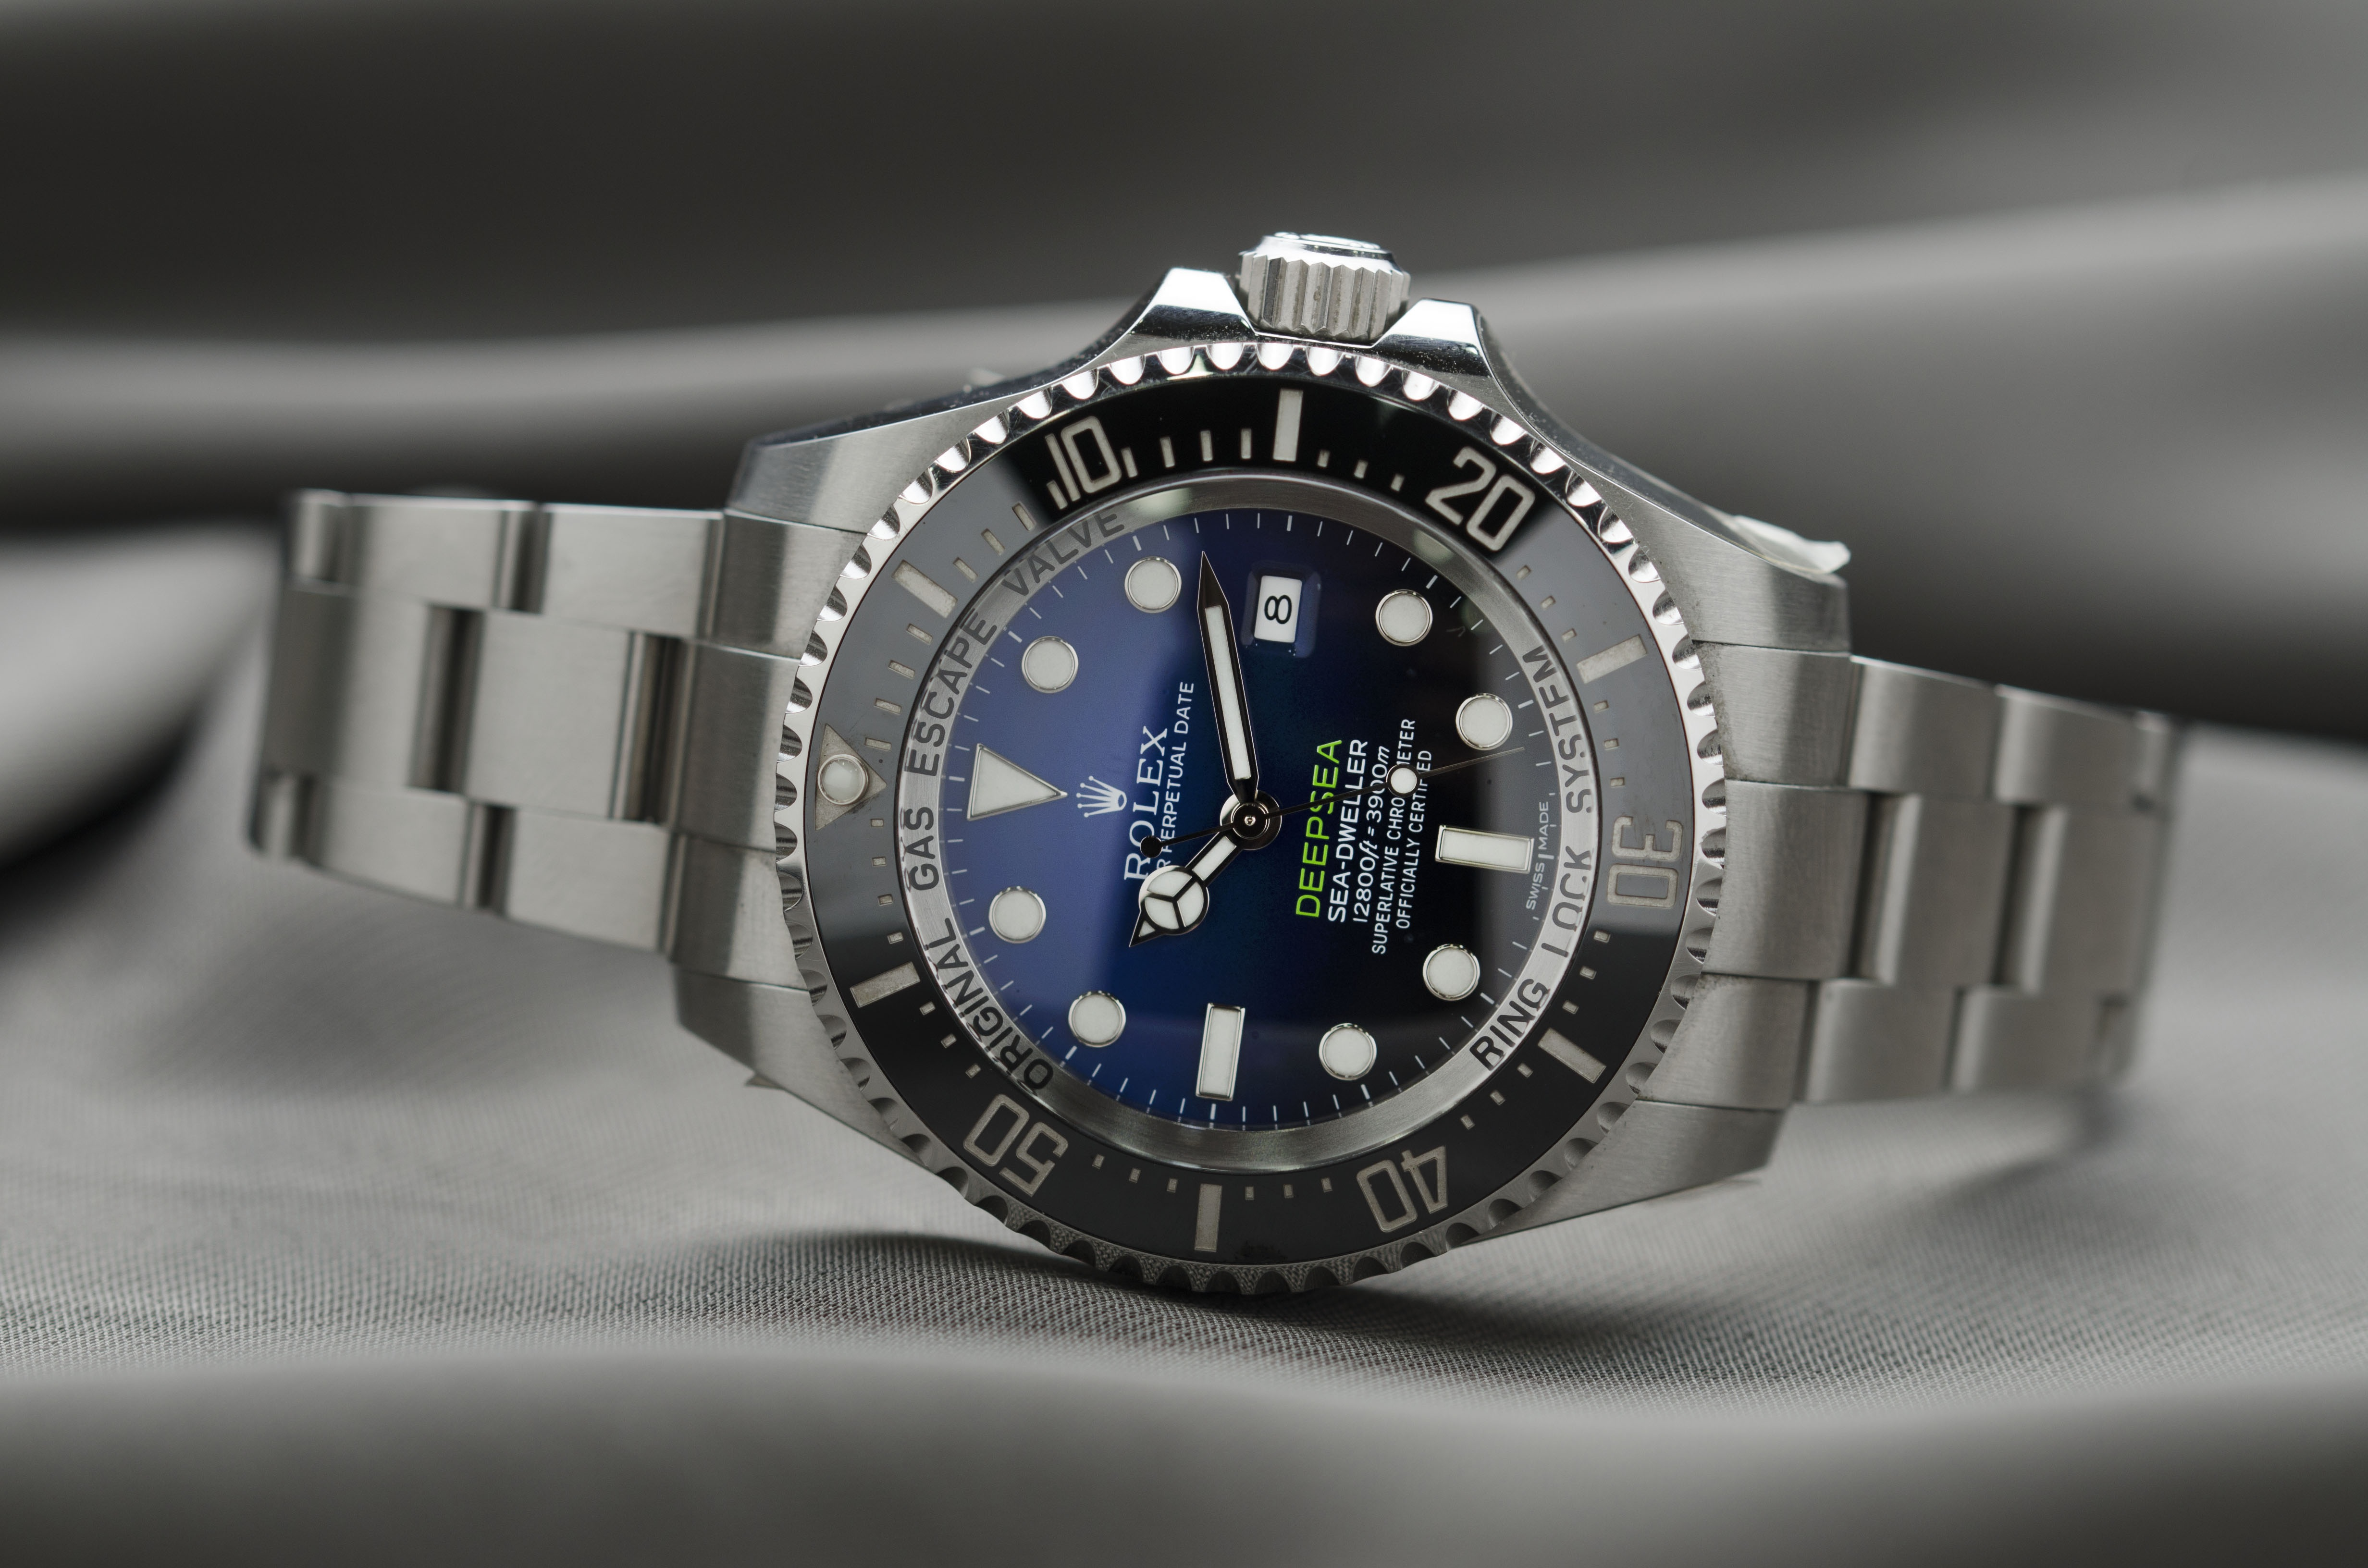 Pre-Owned Luxury Watch, Drakes Jewellers, Plymouth, Pre-Owned Rolex, Pre-Owned Cartier